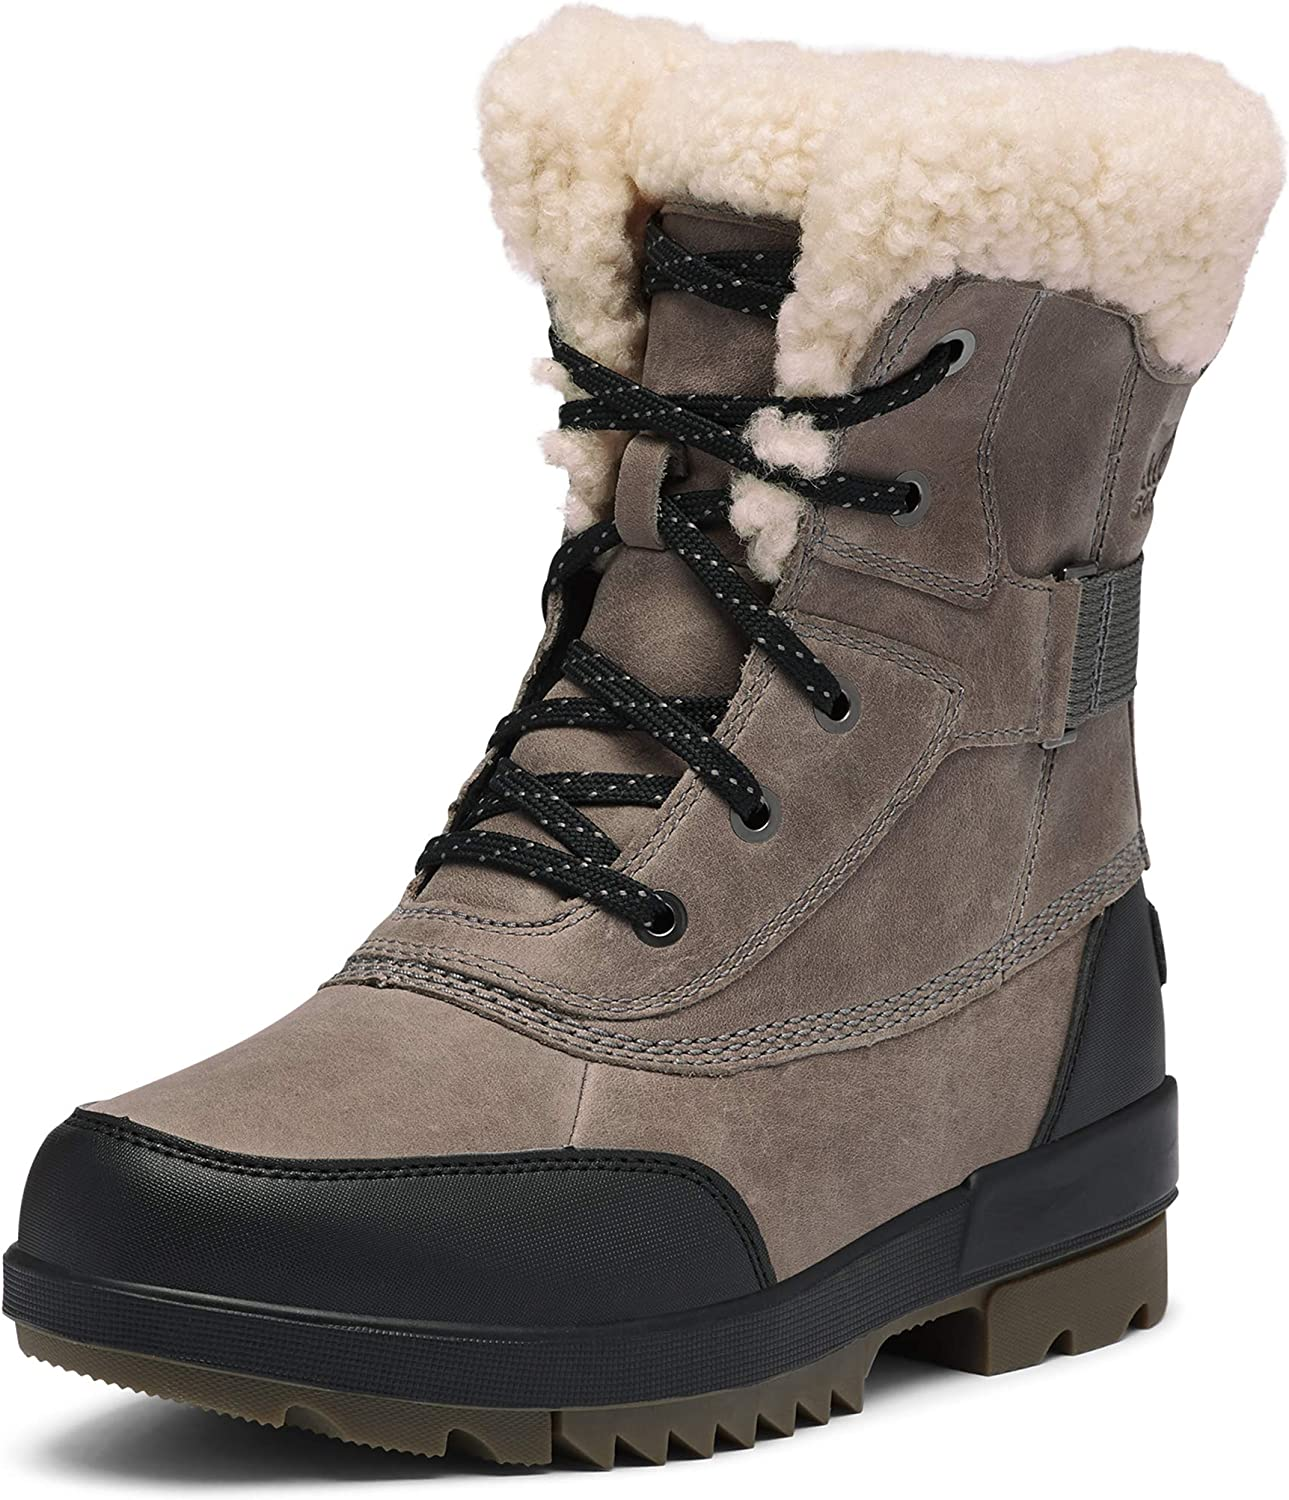 SOREL Women's Super sale Limited Special Price period limited Tivoli IV Parc Boot Bo Waterproof Leather — Winter